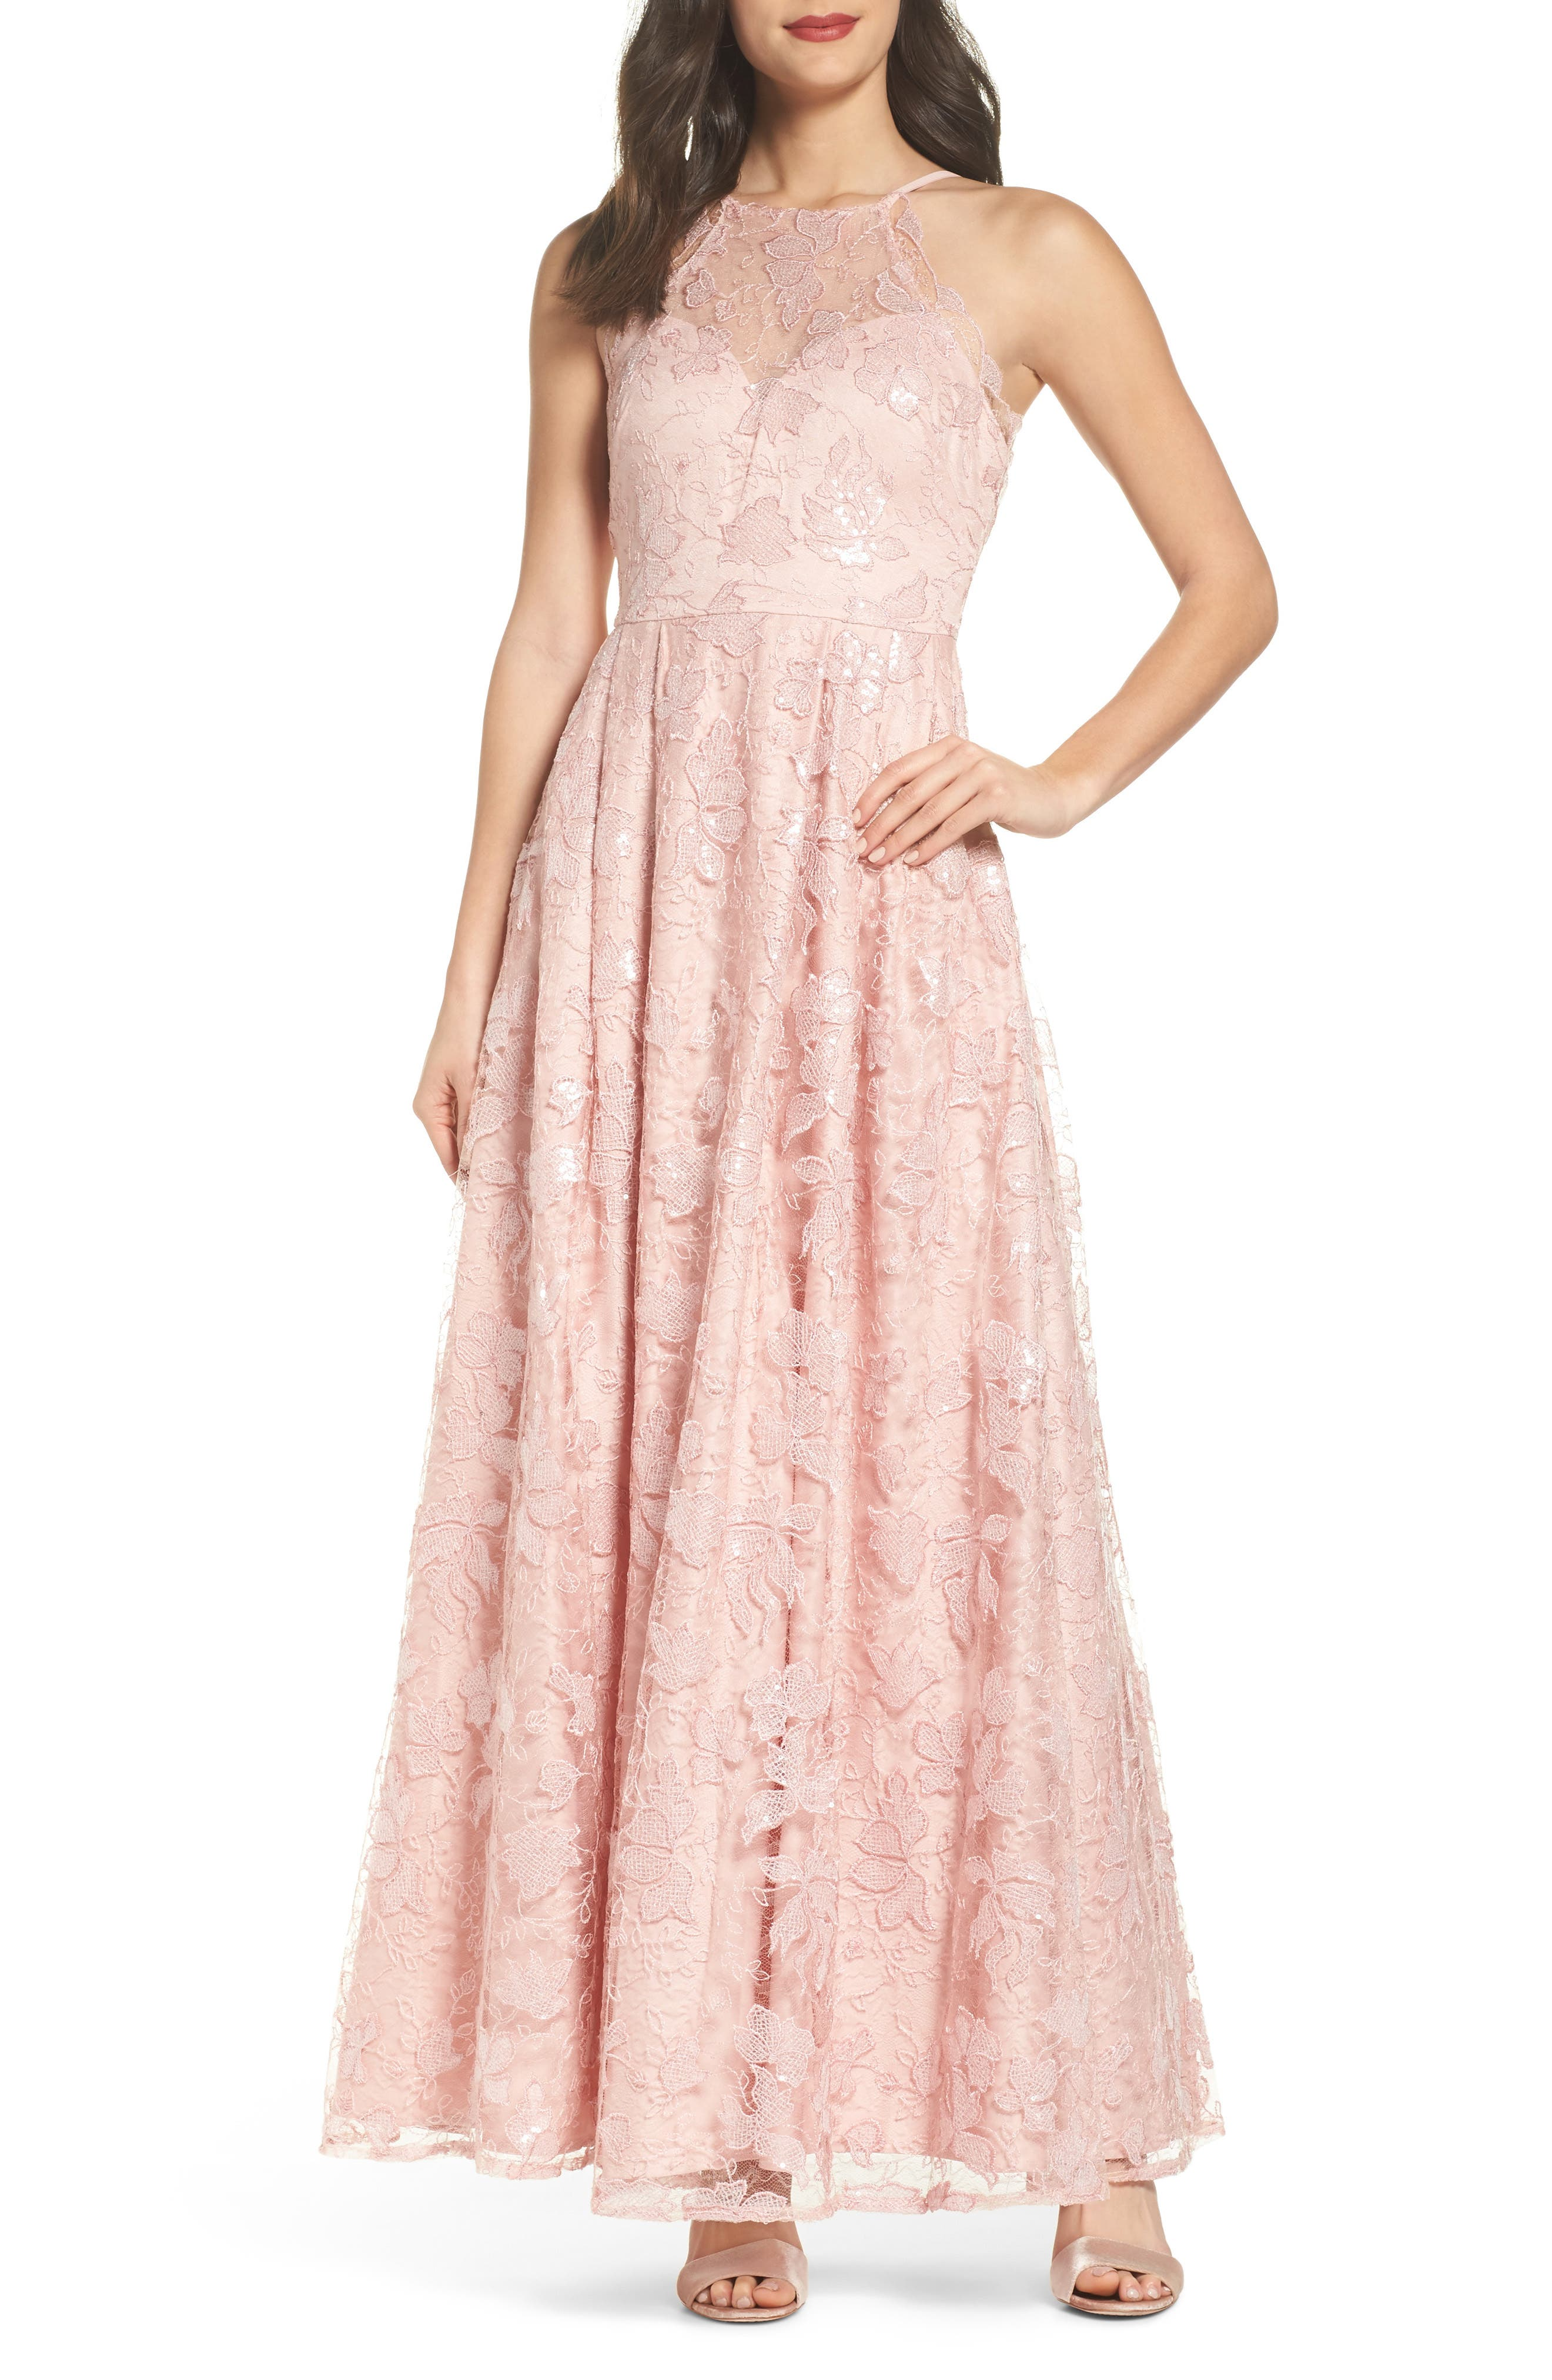 Main Image - Morgan & Co. Lace-Up Back Embroidered Gown